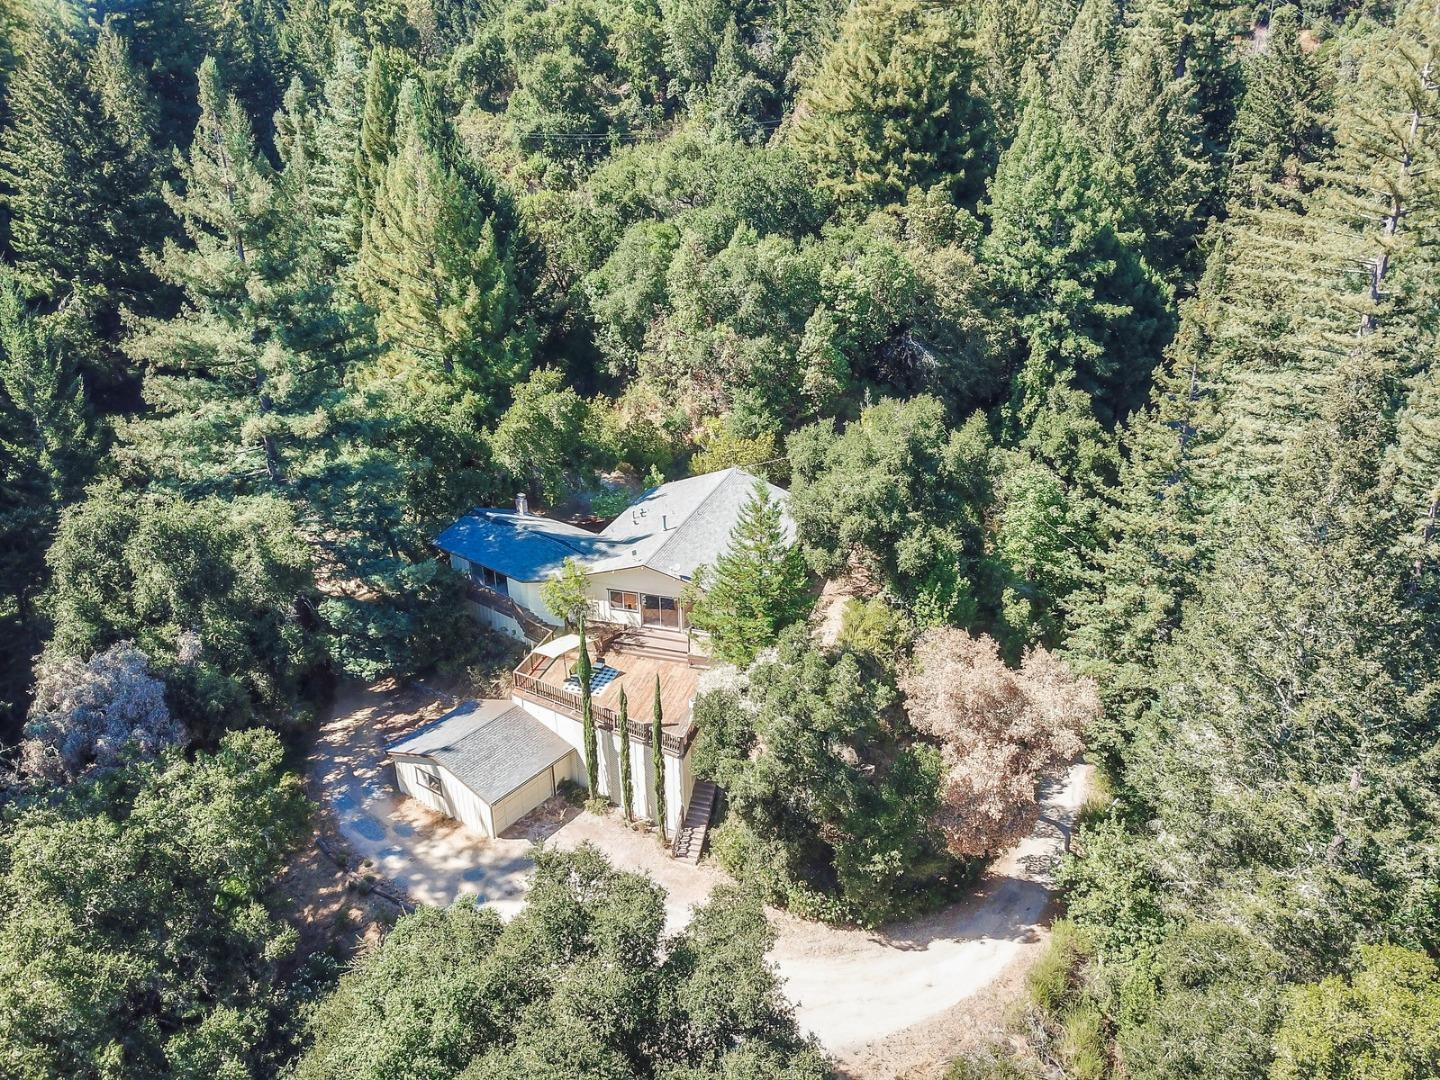 If you are looking for a private, serene getaway in the Santa Cruz mountains with land and an easy living, single level home, you have found it!  Located on 5.75 acres, this property offers beautiful mountain views for those looking to get away from it all.   The one story home is very spacious and features a large living room and separate family room, both with fireplaces.  I love the vaulted ceilings in the living room and the slider and large windows overlooking the expansive deck and views of the mountains.  You have plenty of space for parking larger vehicles and a detached 2 car garage.  Central heat and Air Conditioning.  This home is in the Scotts Valley School District and in a good location for Silicon Valley commuters.  Welcome Home!